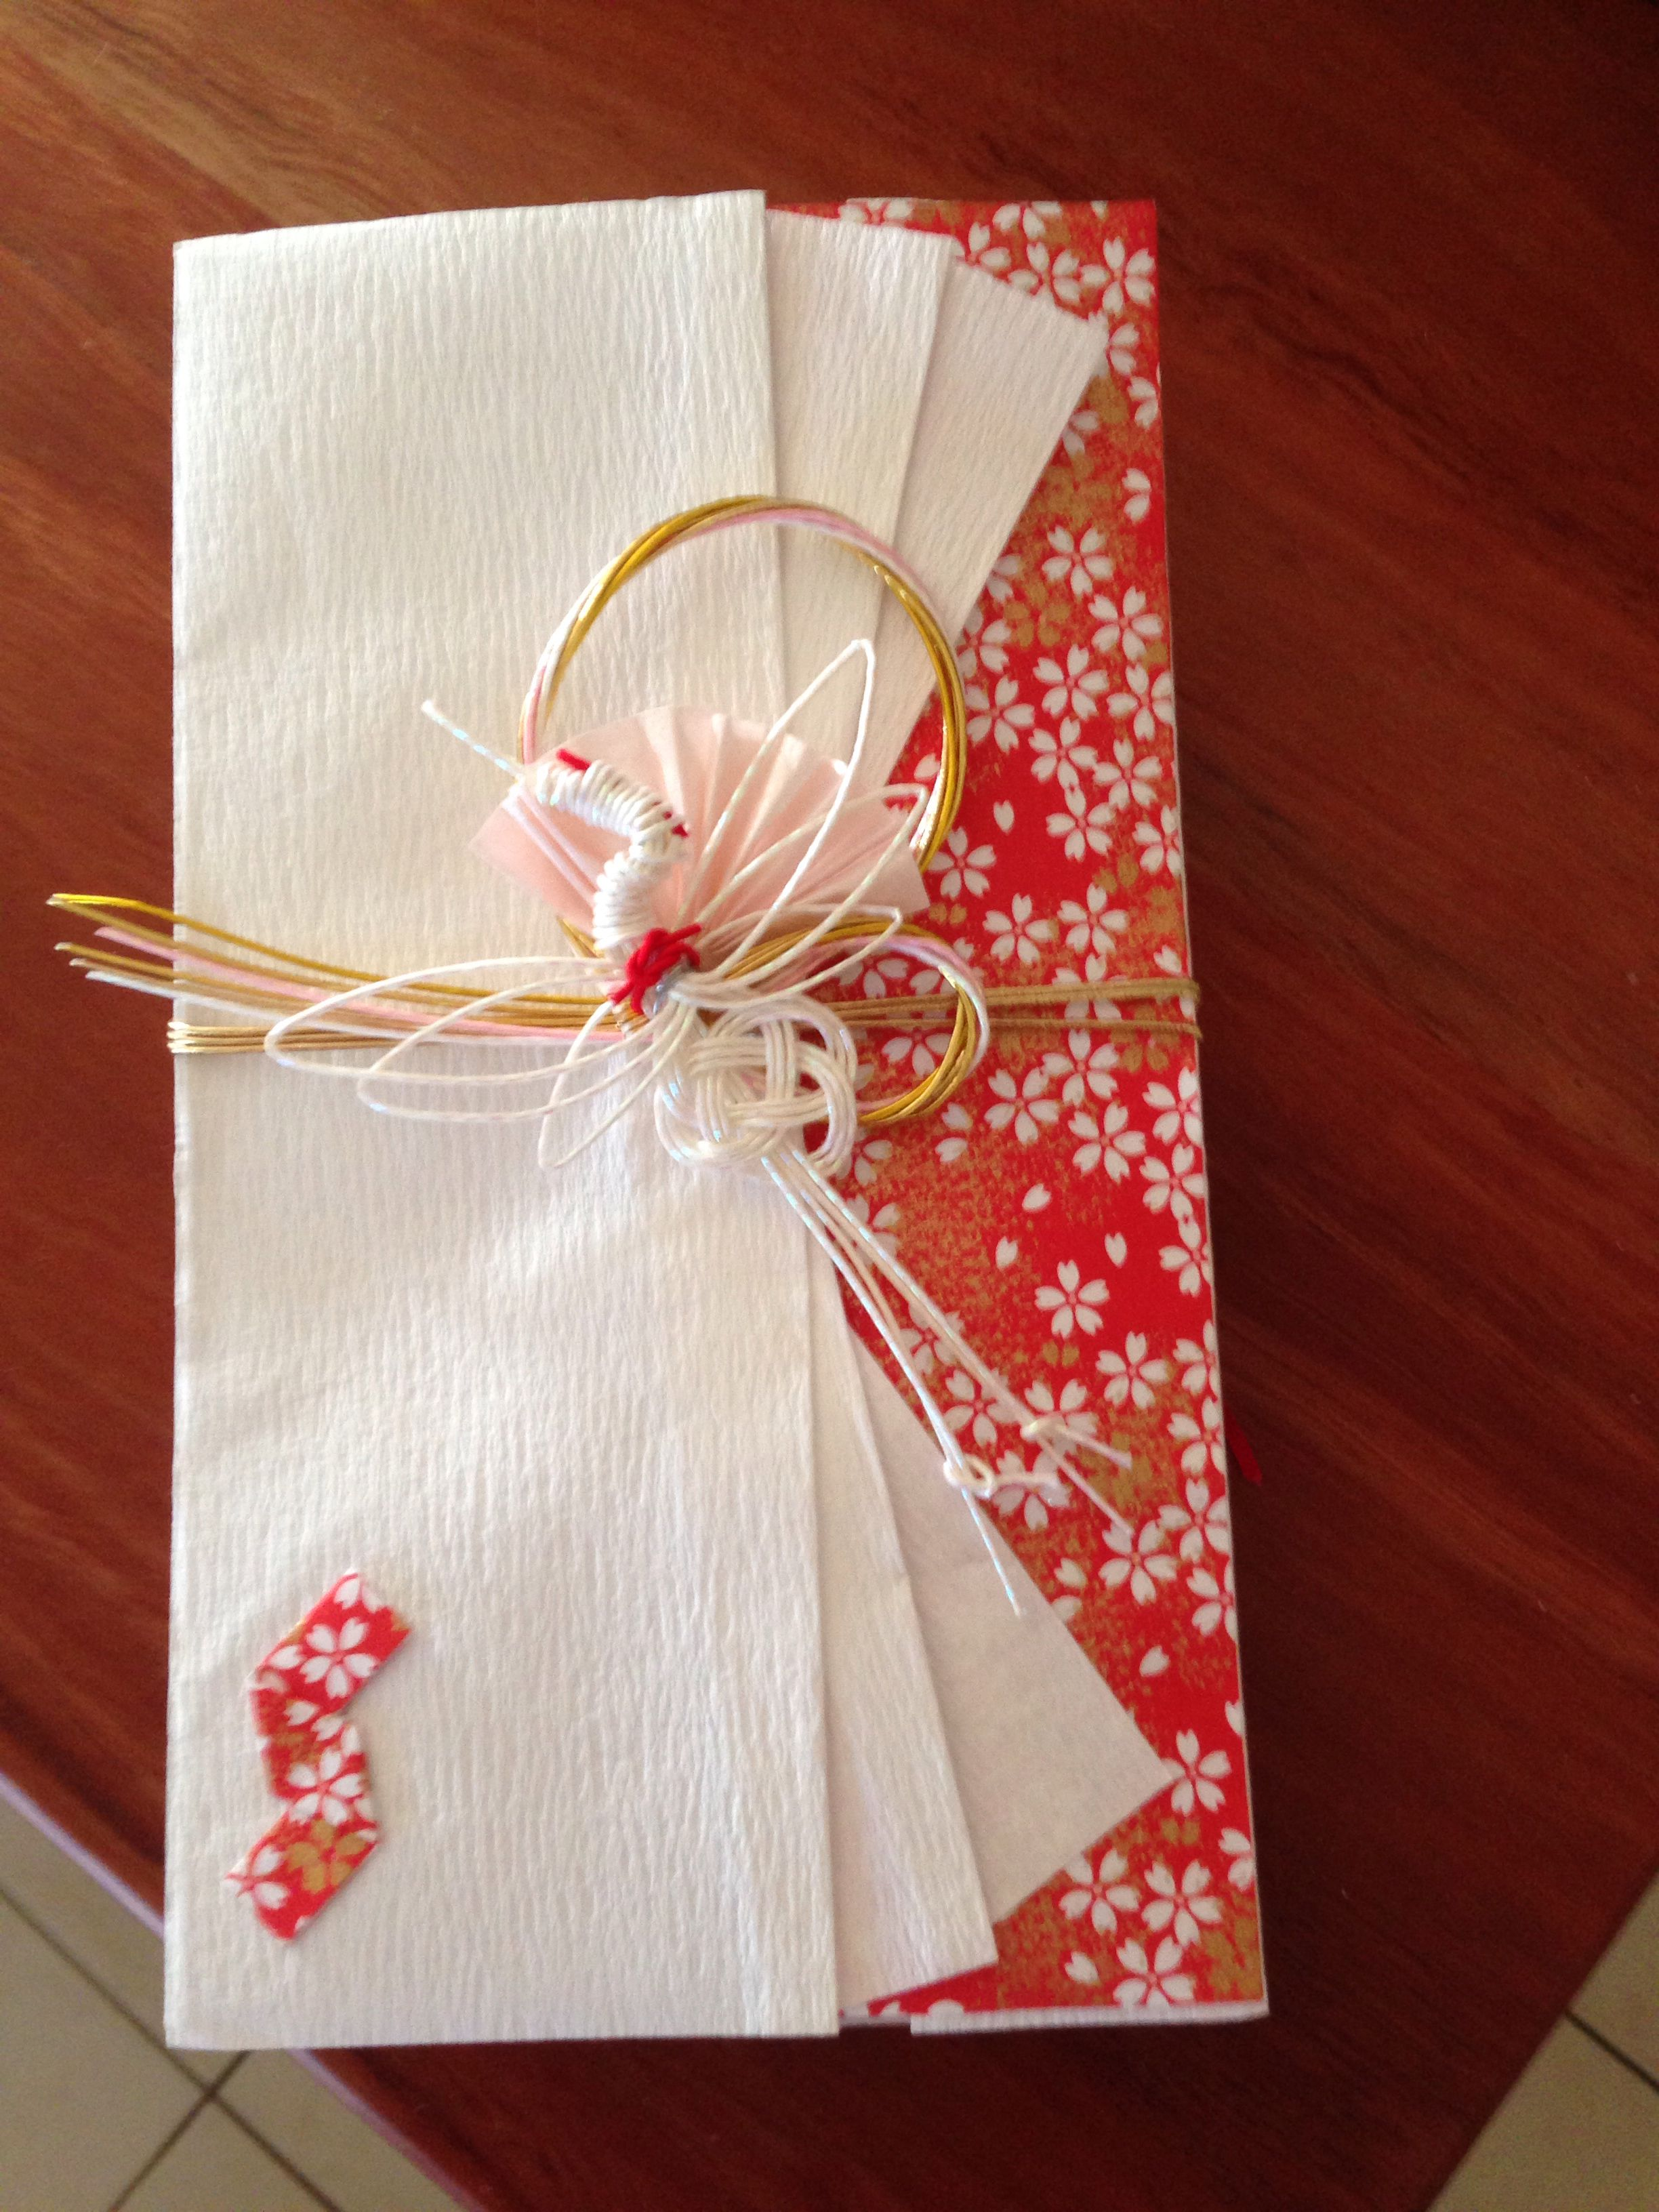 ... money envelope. Hand Made Pinterest Wedding, Money envelopes and